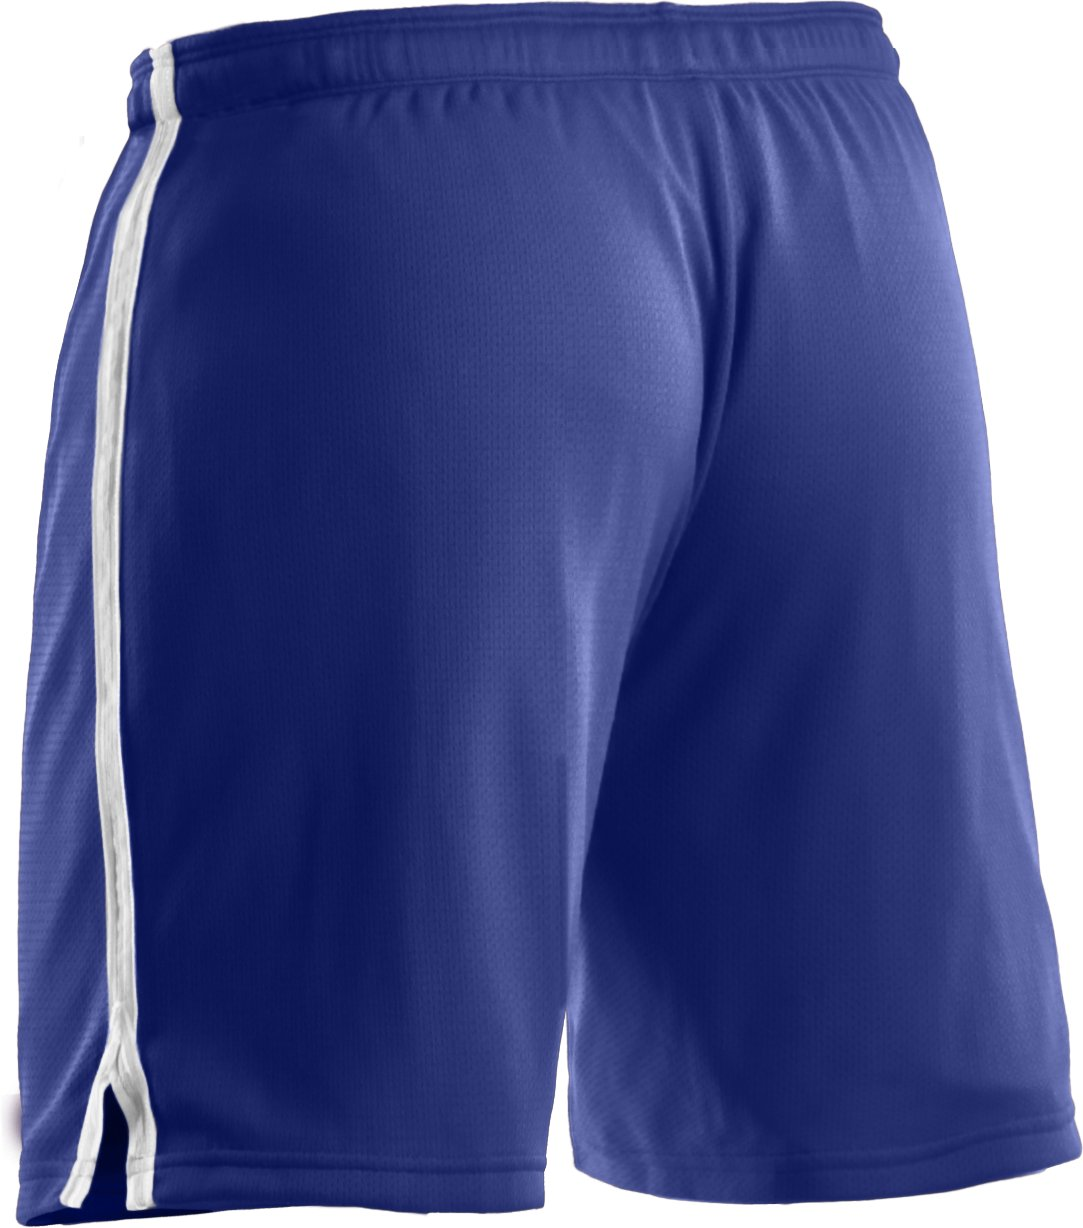 "Women's Skill 6"" Mesh Shorts, Royal"